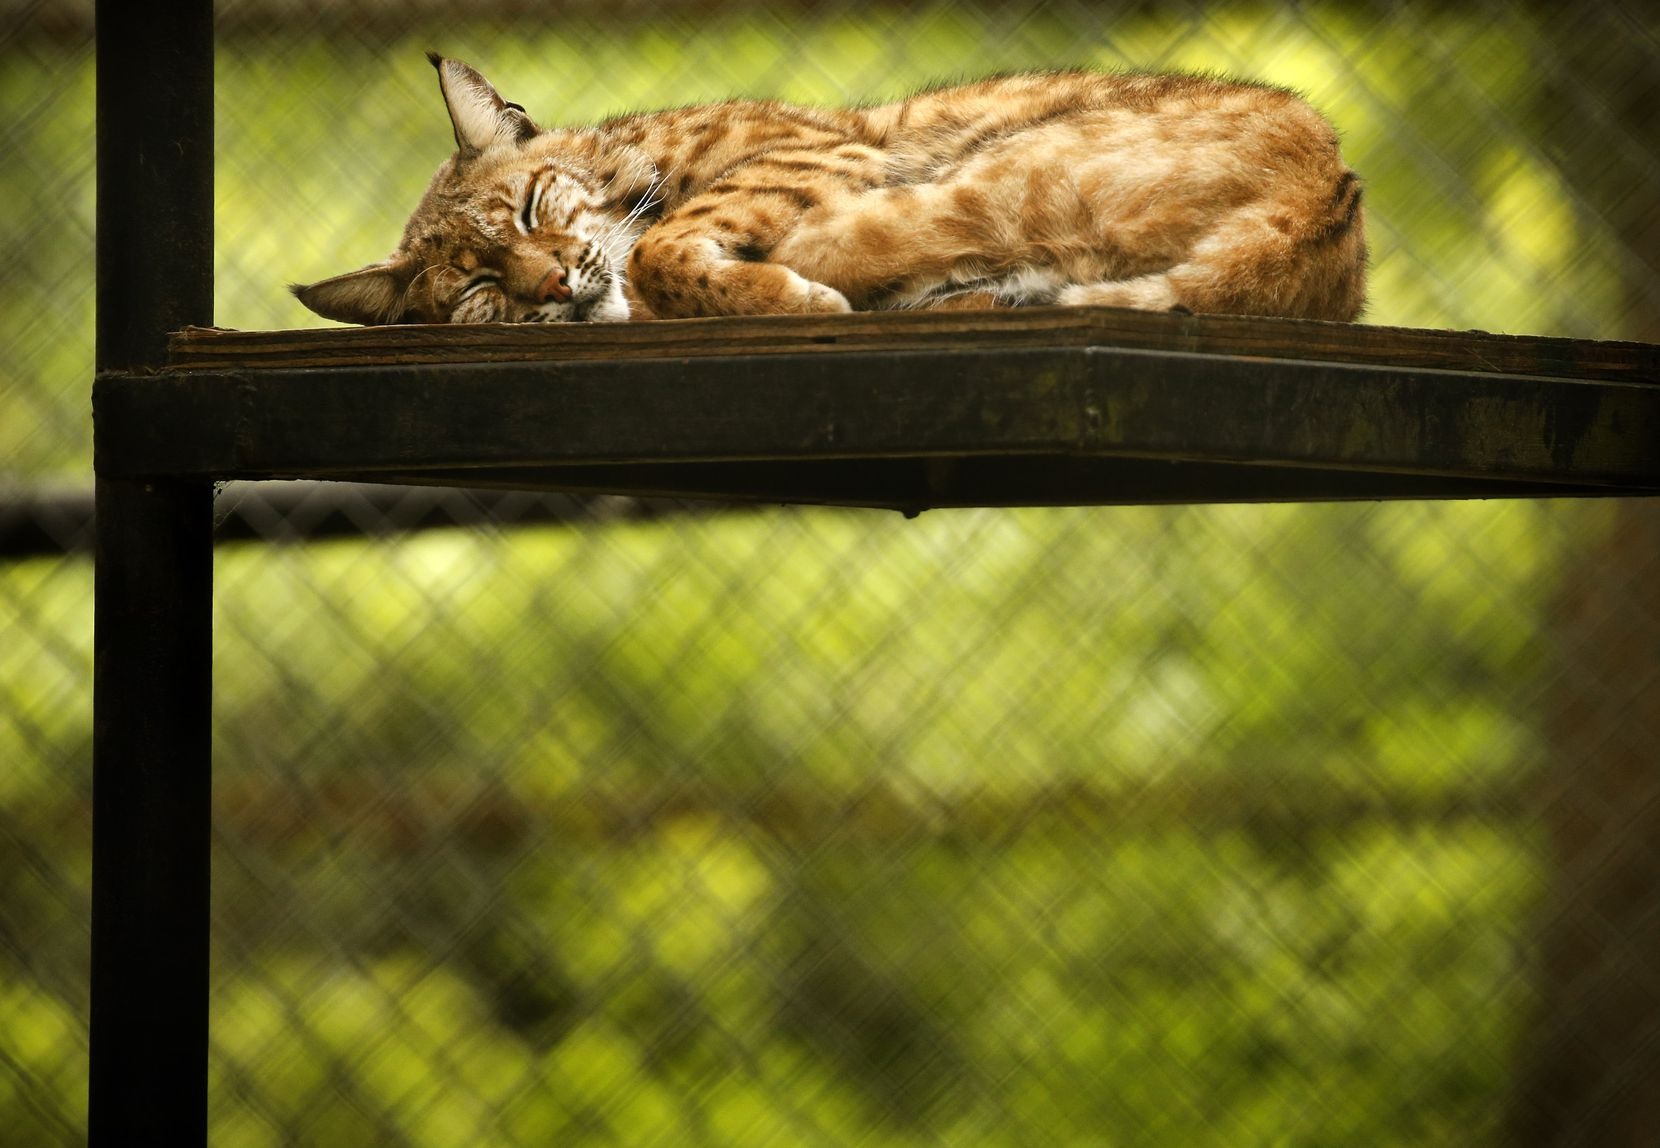 A bobcat naps at In-Sync Exotics in Wylie, Texas on May 15, 2020.  (Tom Fox/The Dallas Morning News)